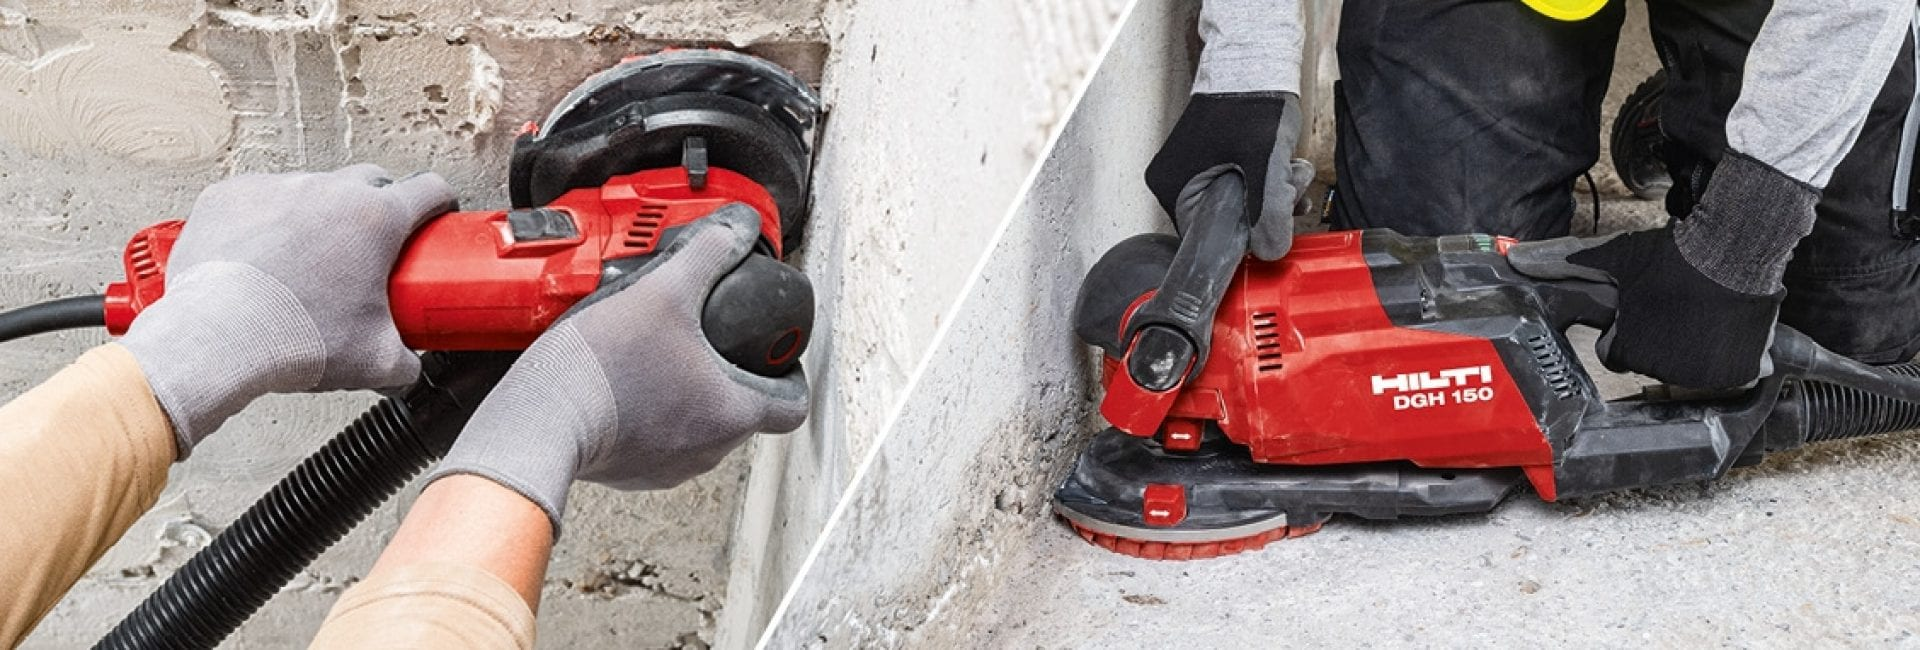 Hilti DG 130 diamond grinder for wall grinding